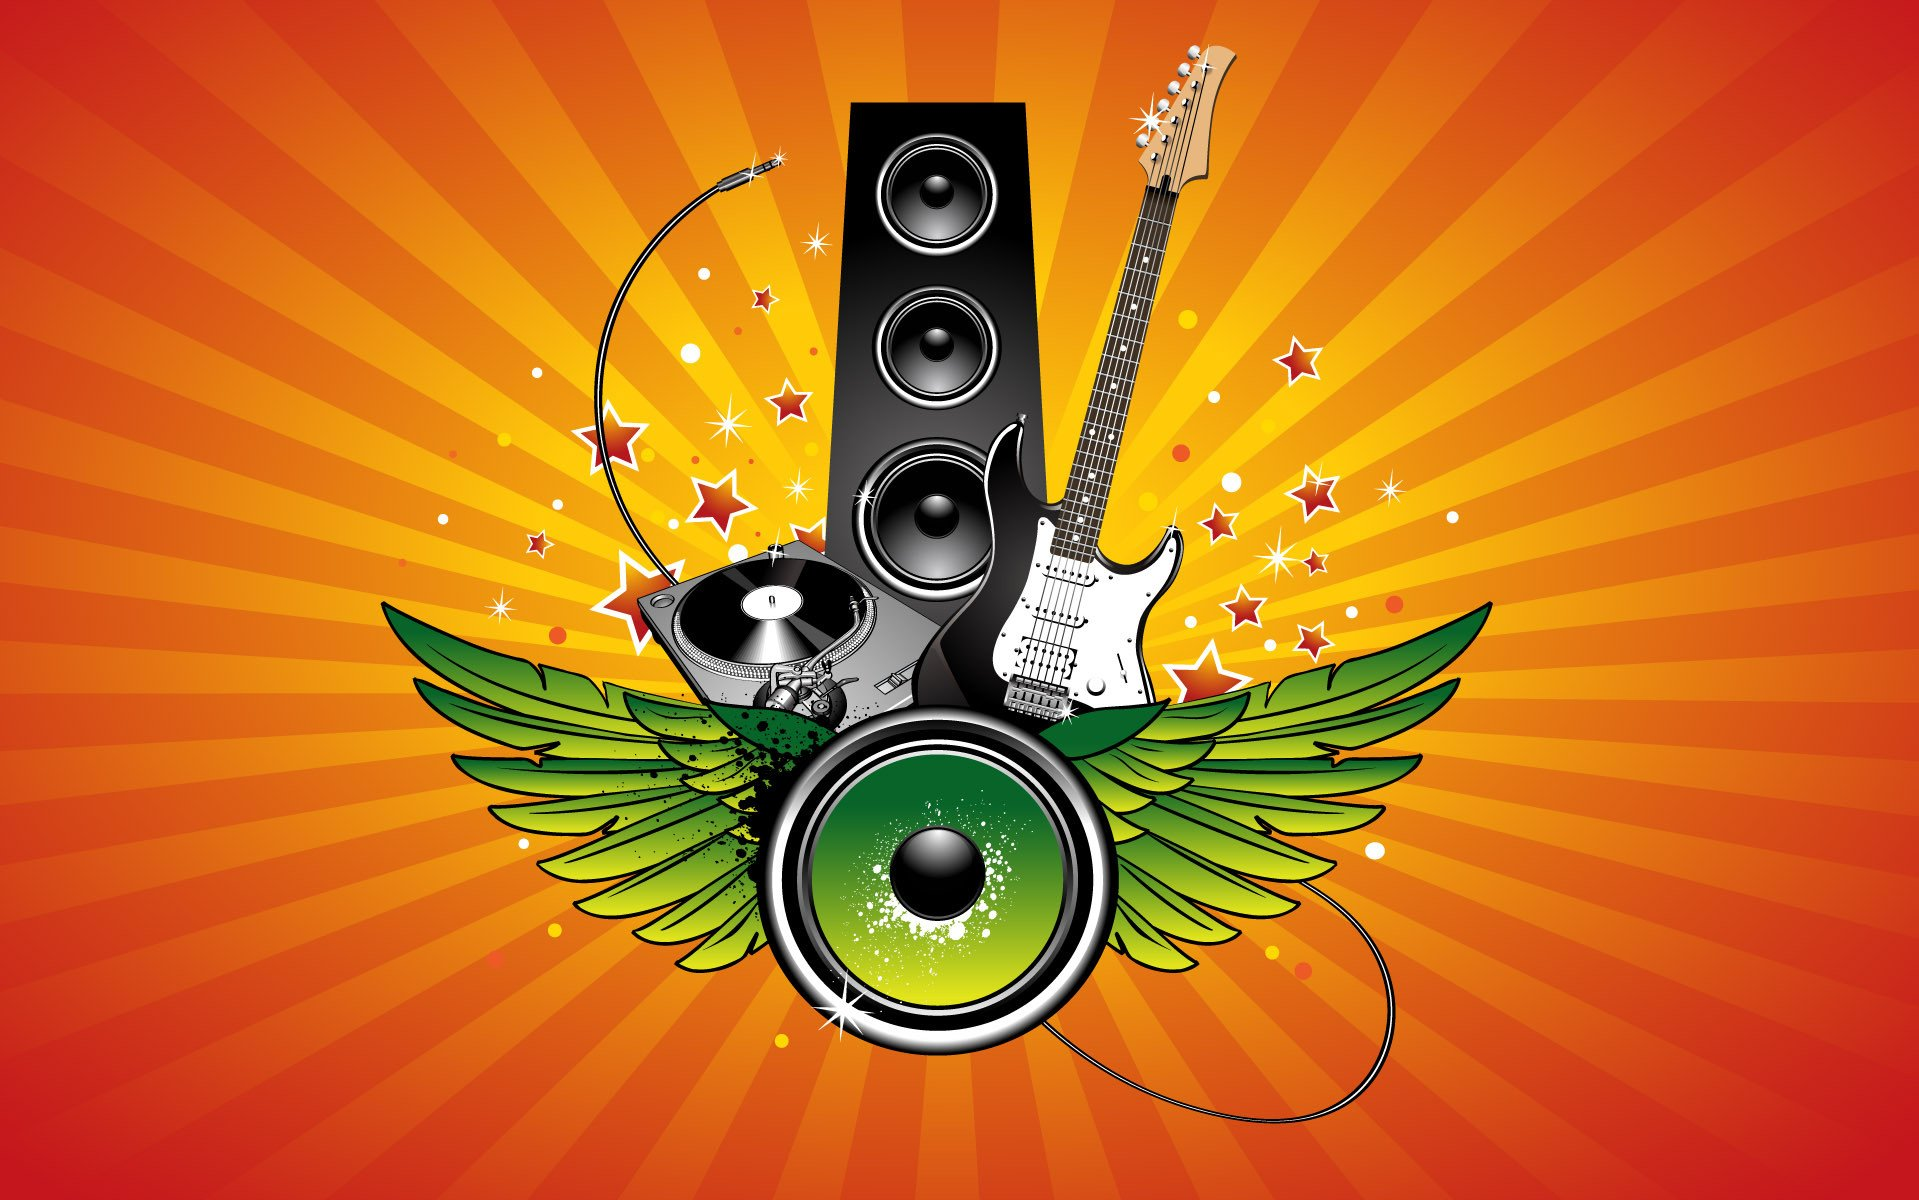 Music Wallpapers and Backgrounds Free Music Wallpaper Background for Mobile Pc and Mac